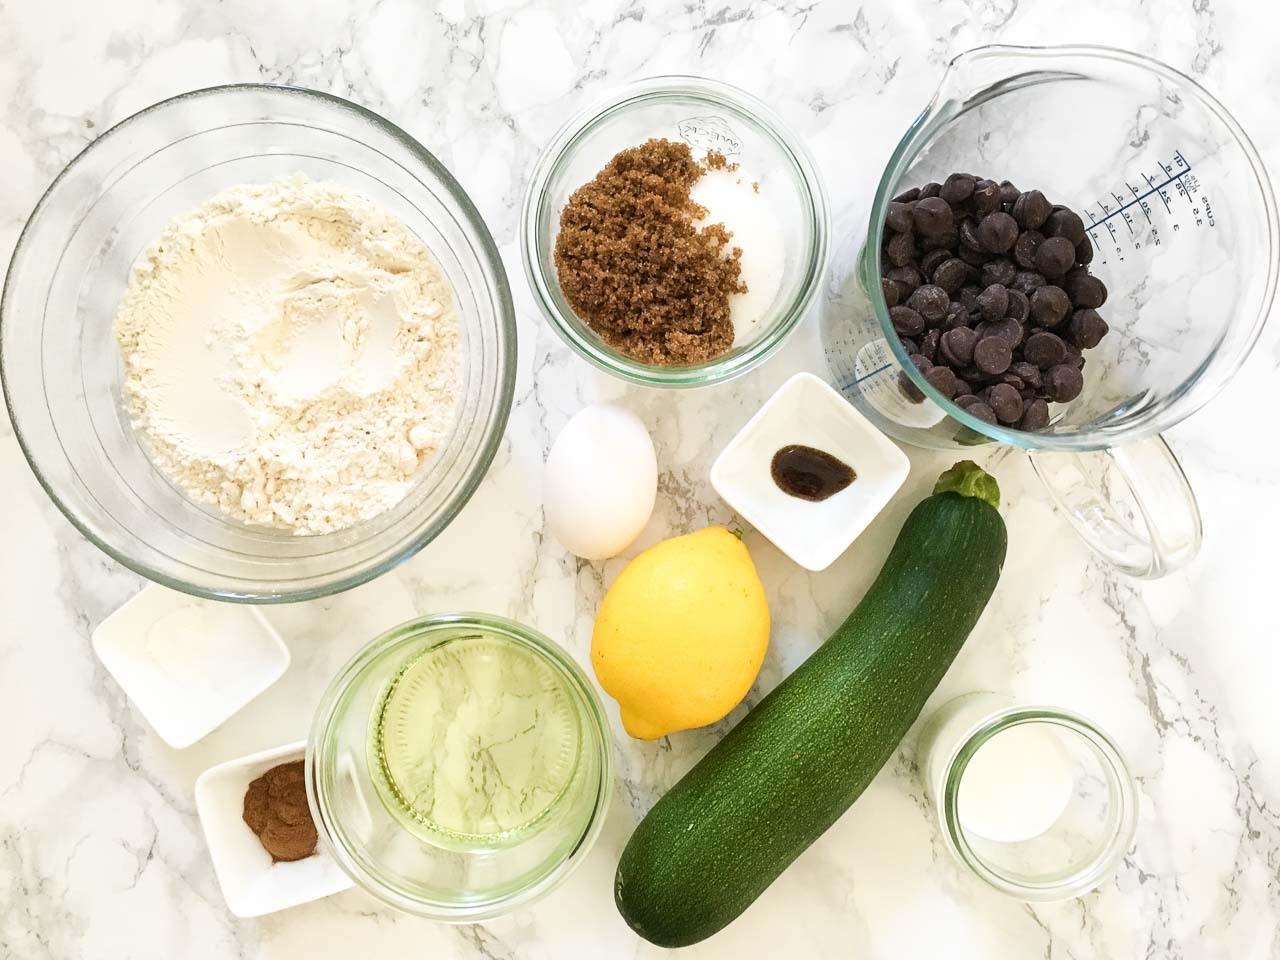 Zucchini Chocolate Chip Muffins Ingredients